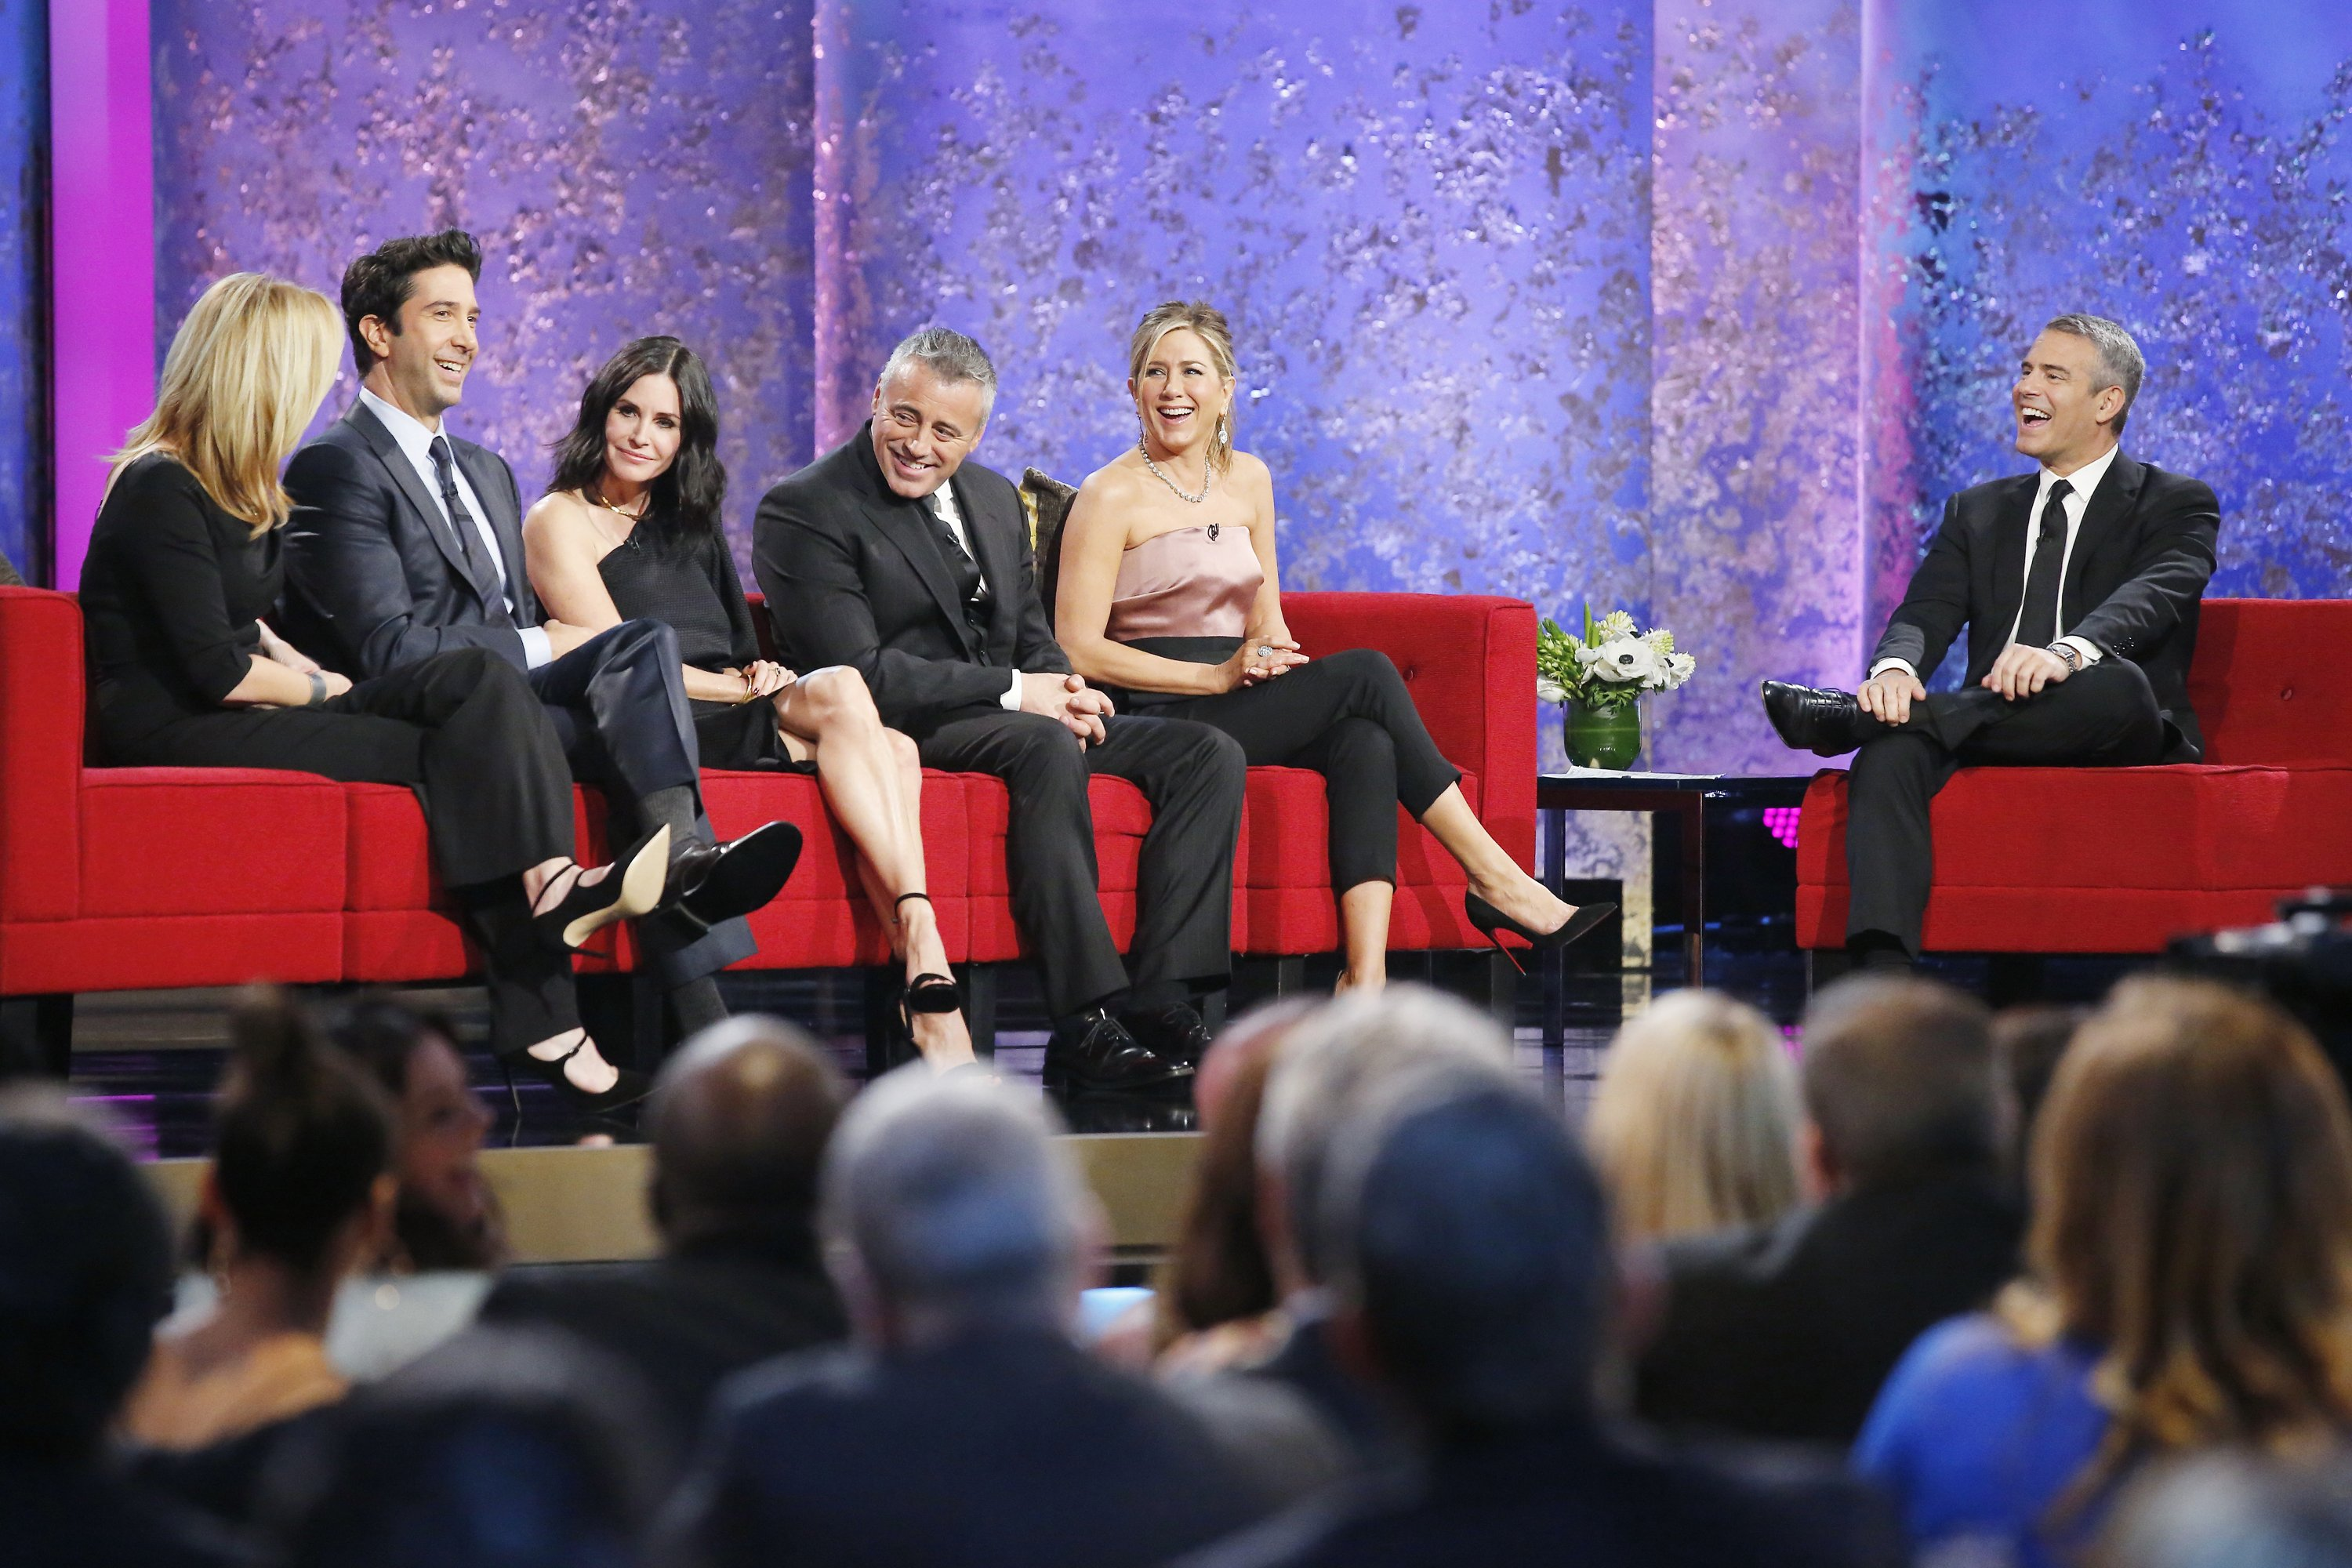 David Schwimmer, Courtney Cox, Matt LeBlanc, and Jennifer Anniston with TV show host Andy Cohen. | Photo: Getty Images